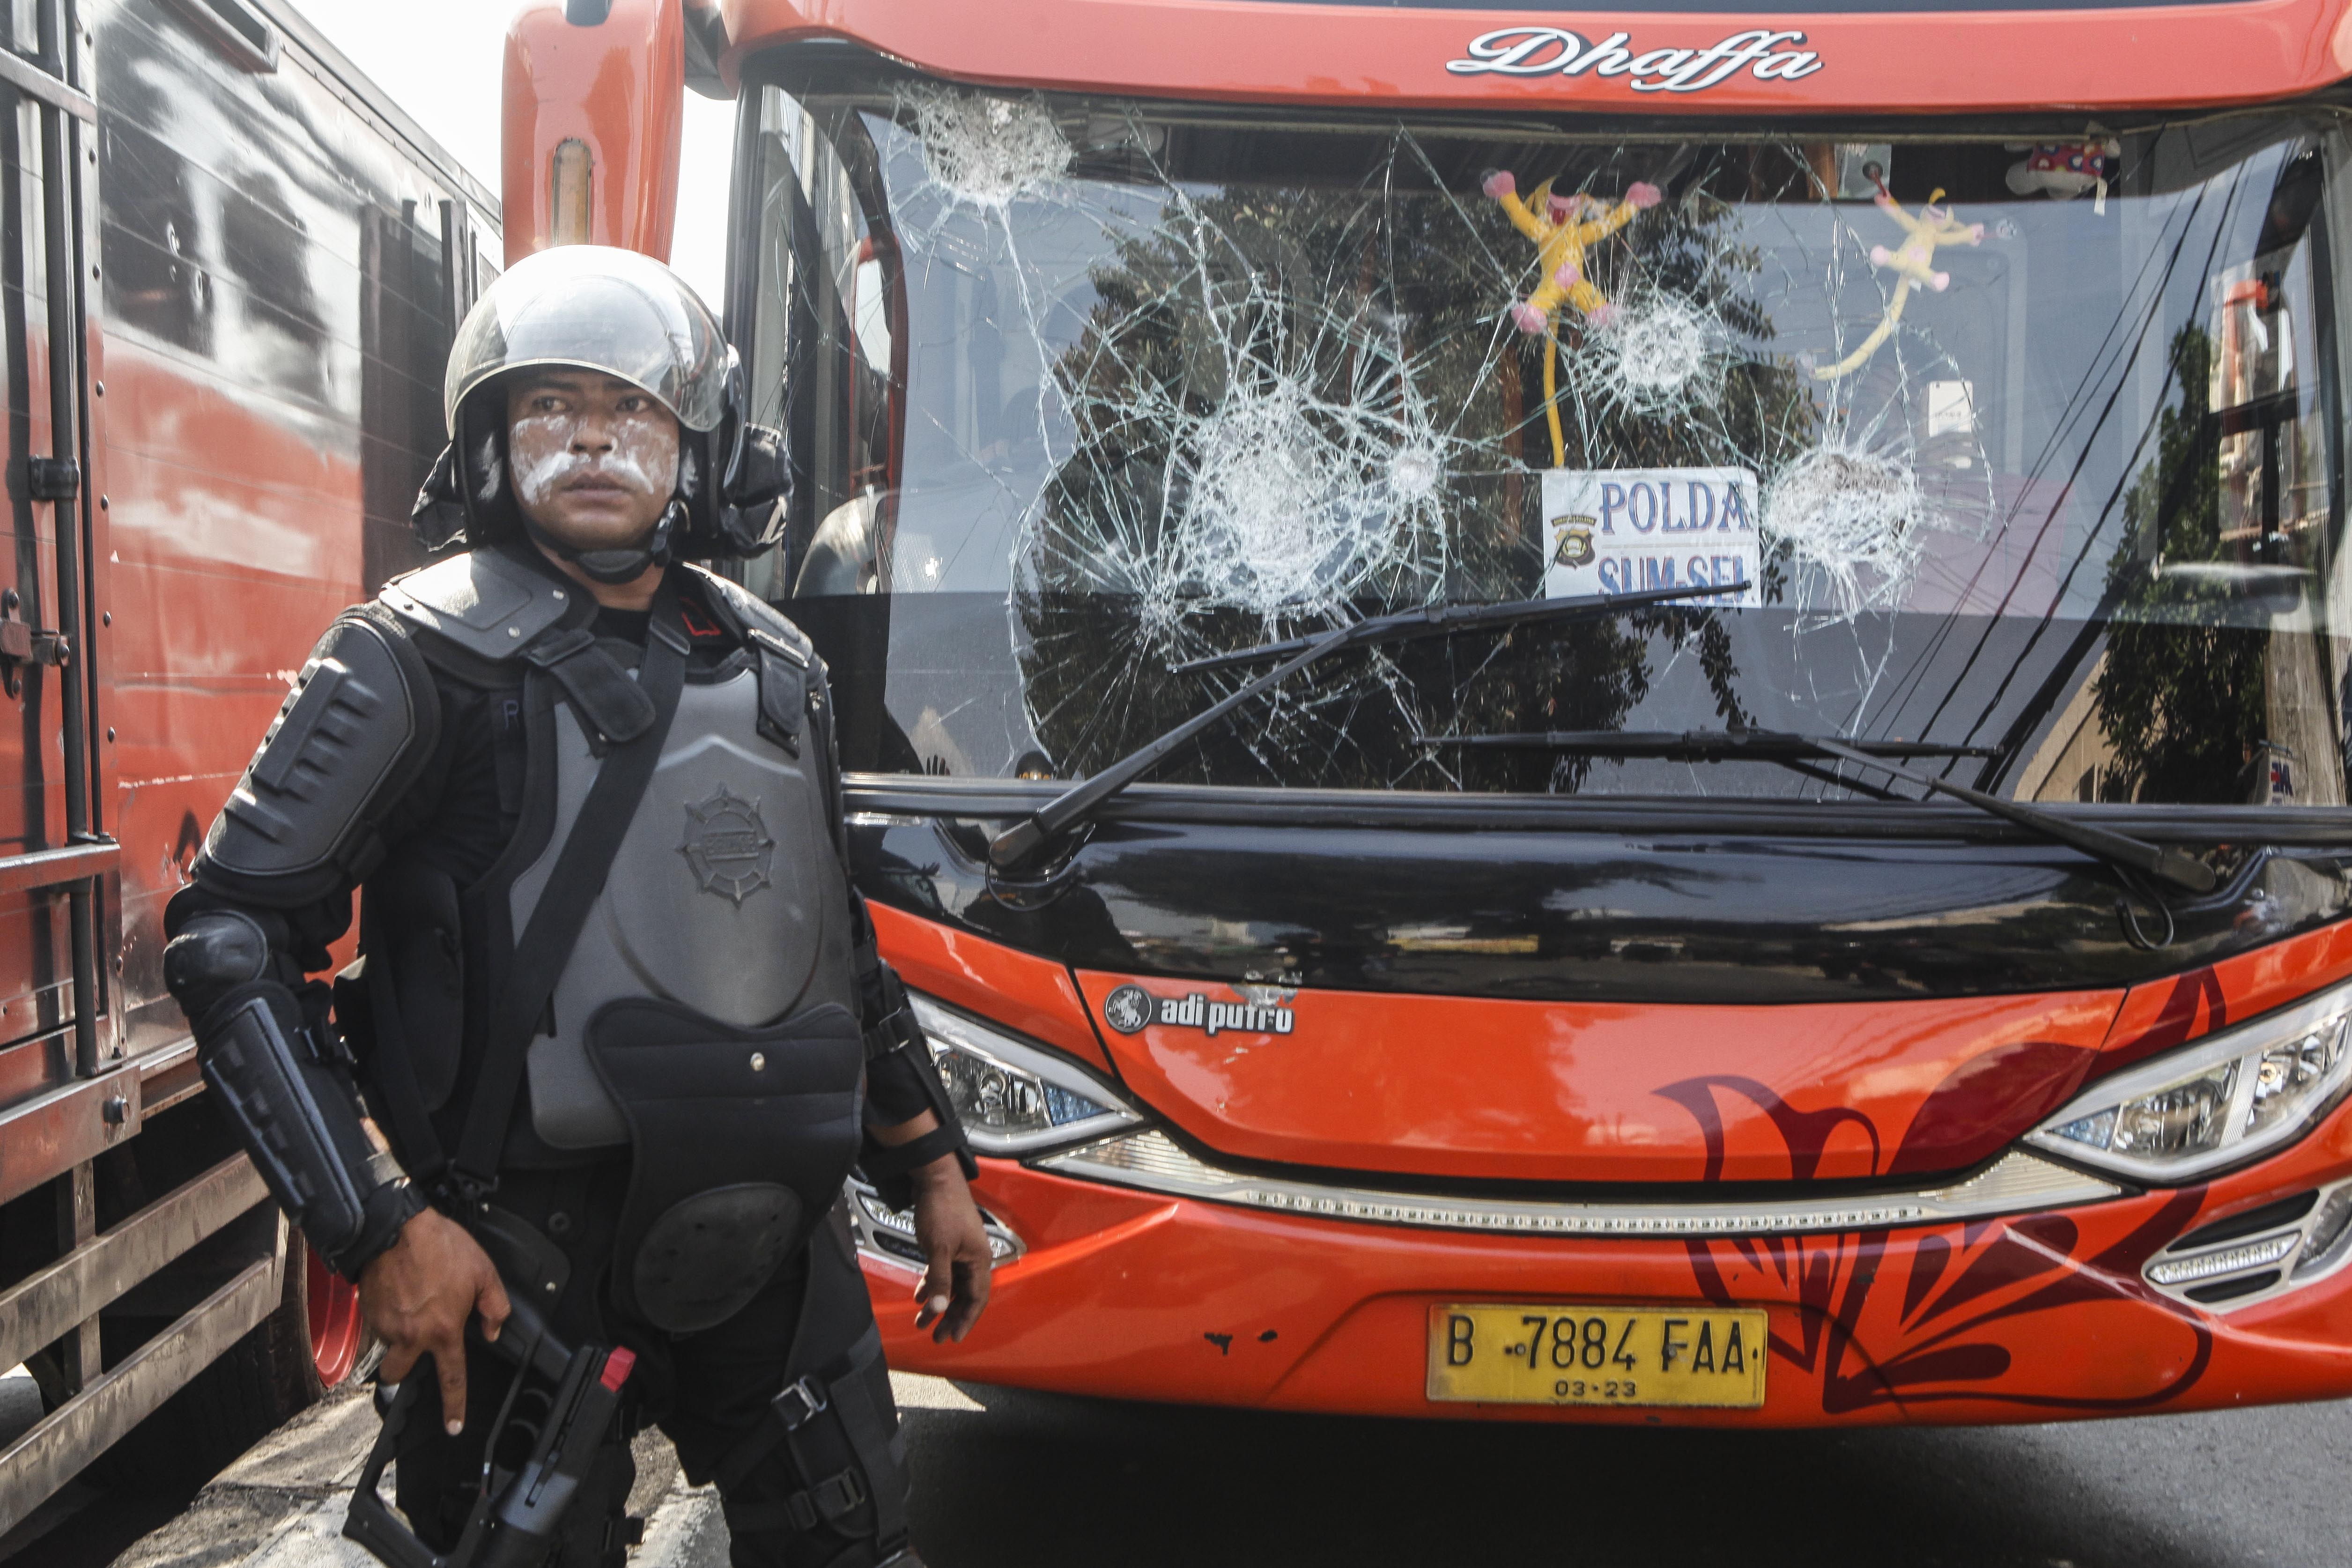 6 Dead in Indonesia Post-Election Protest